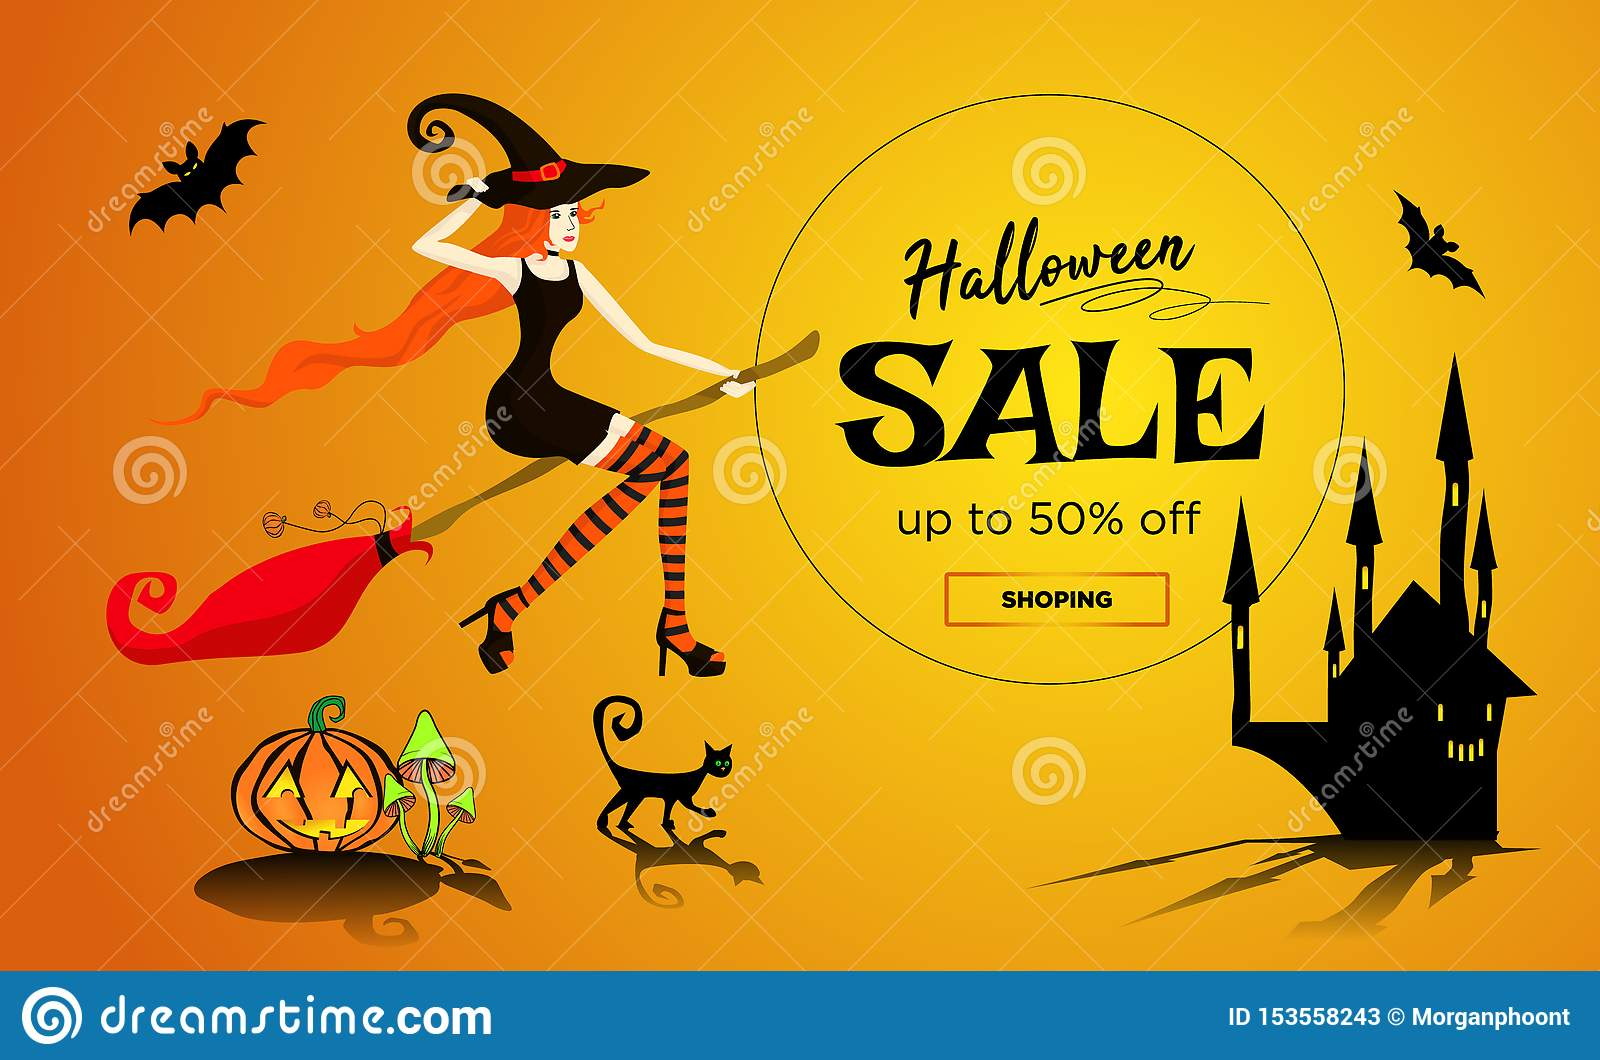 Halloween sale promotion poster, banner with a beautiful redhair witch flying on a broomstick, a black cat and dark castle